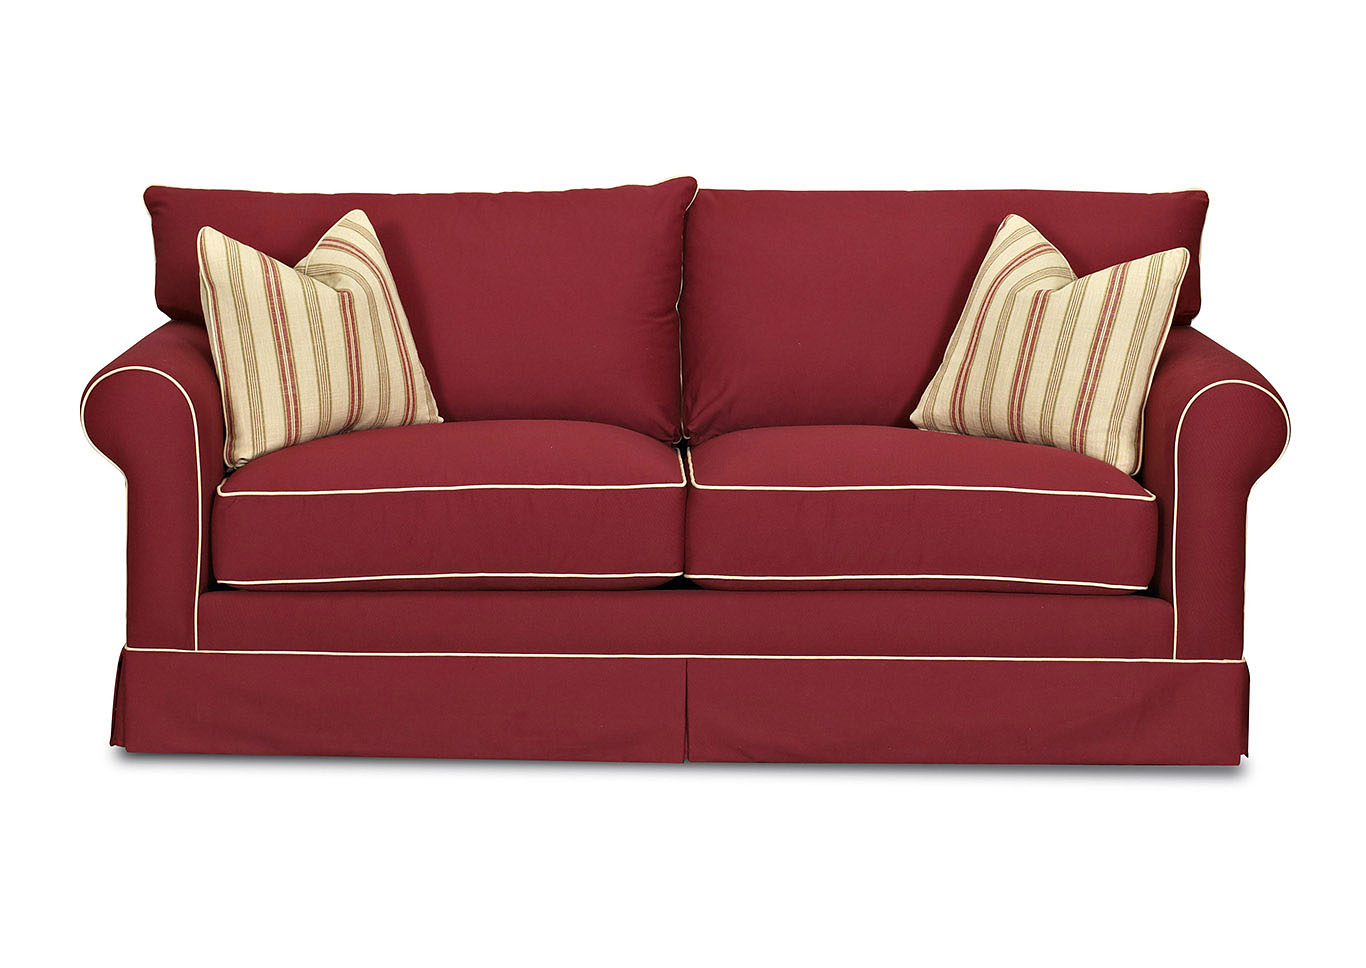 Charmant Jenny Red Stationary Fabric Sofa,Klaussner Home Furnishings